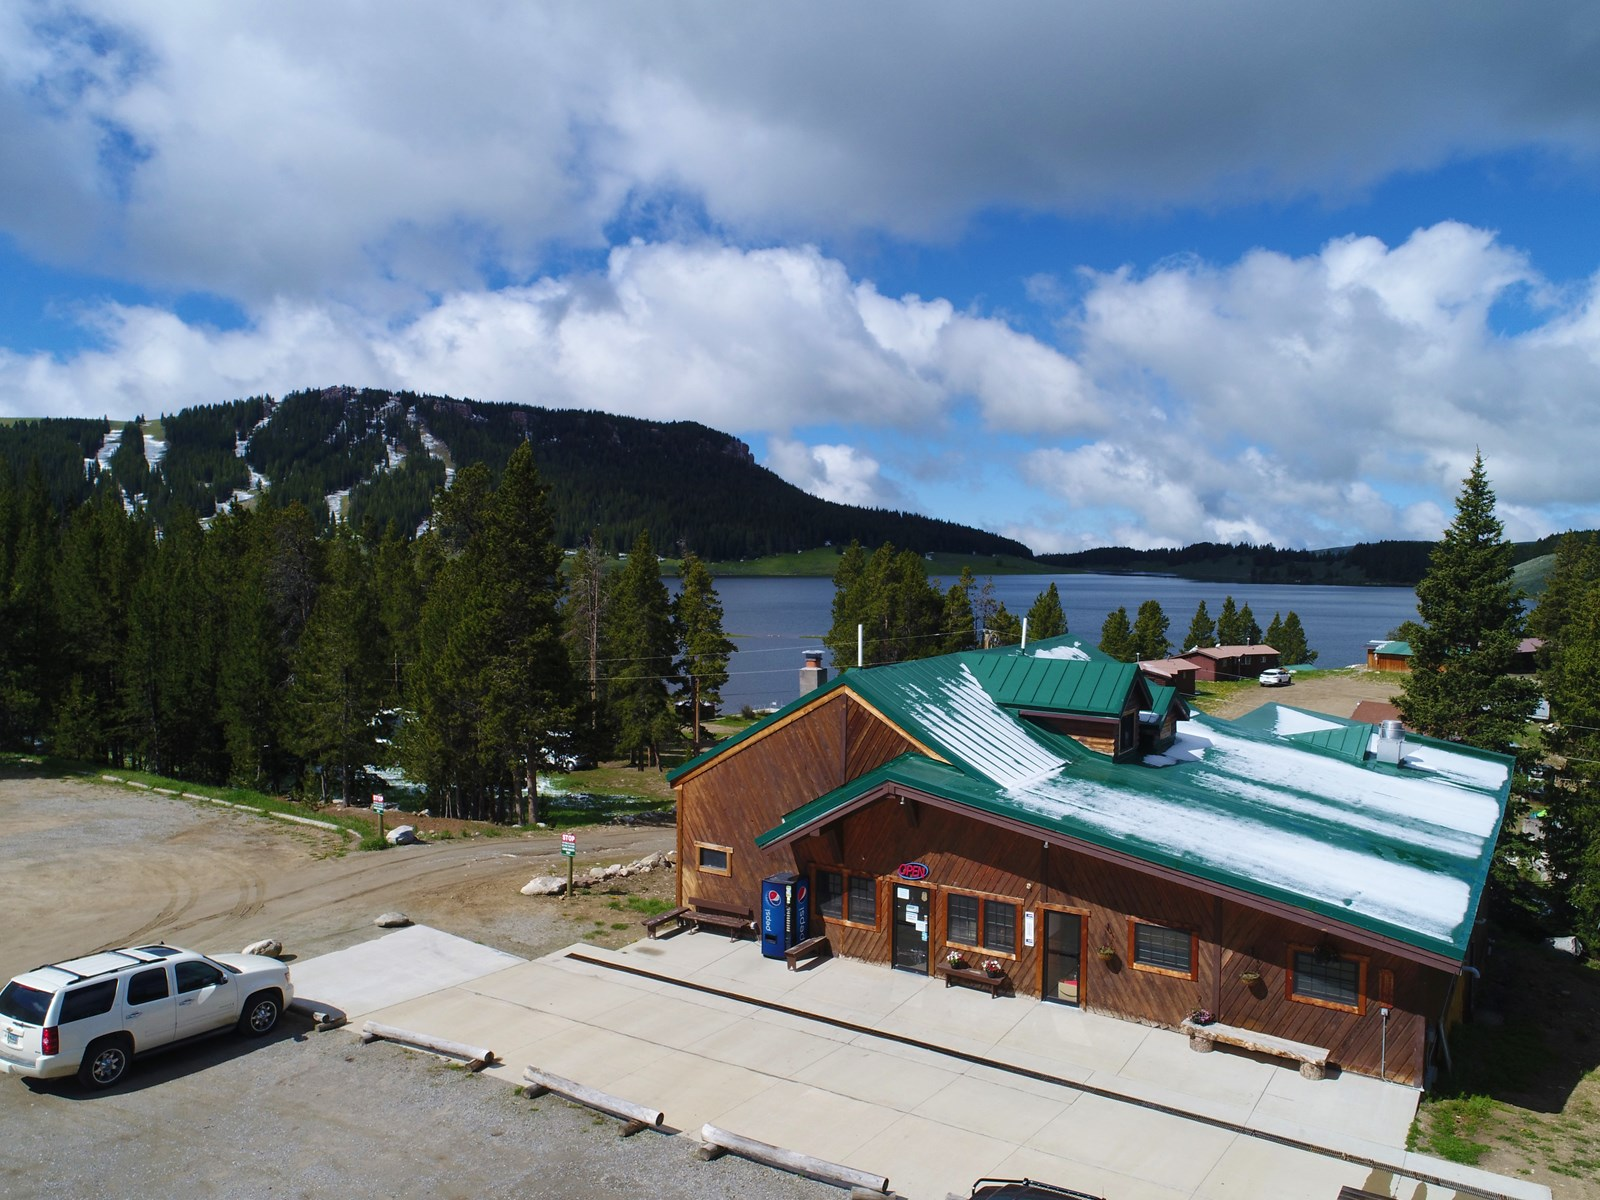 Bar & Grill and Rental Cabins for Sale